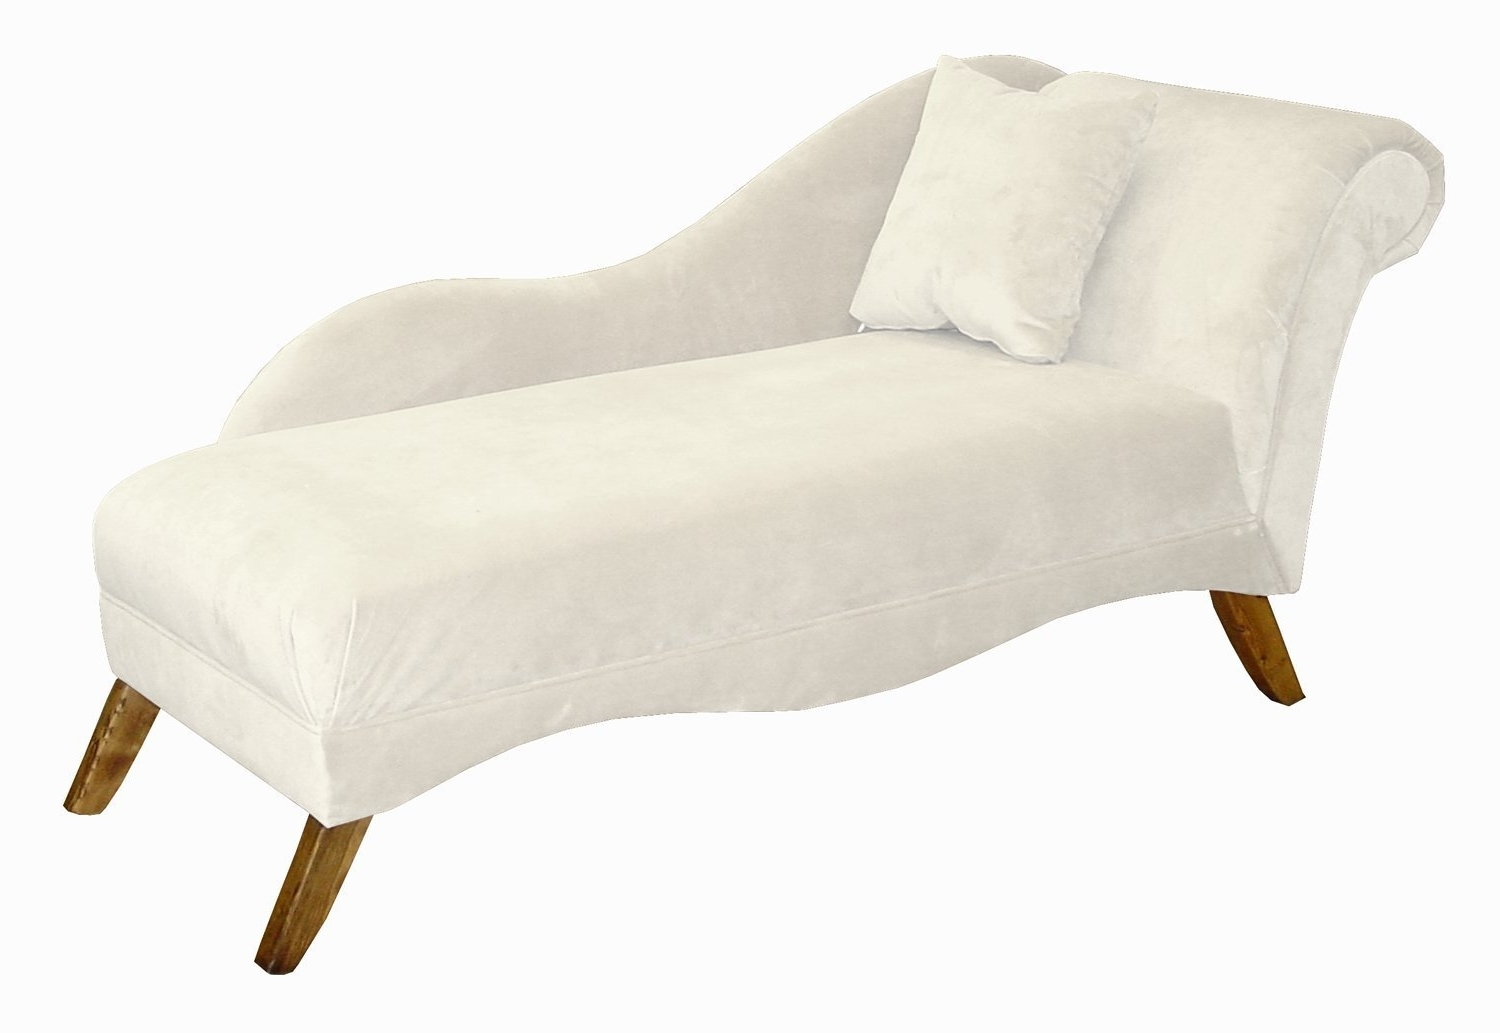 Amazon: Isabella Single Arm Chaise Loungeskyline Furniture Intended For Recent Chaise Lounges With Arms (View 15 of 15)